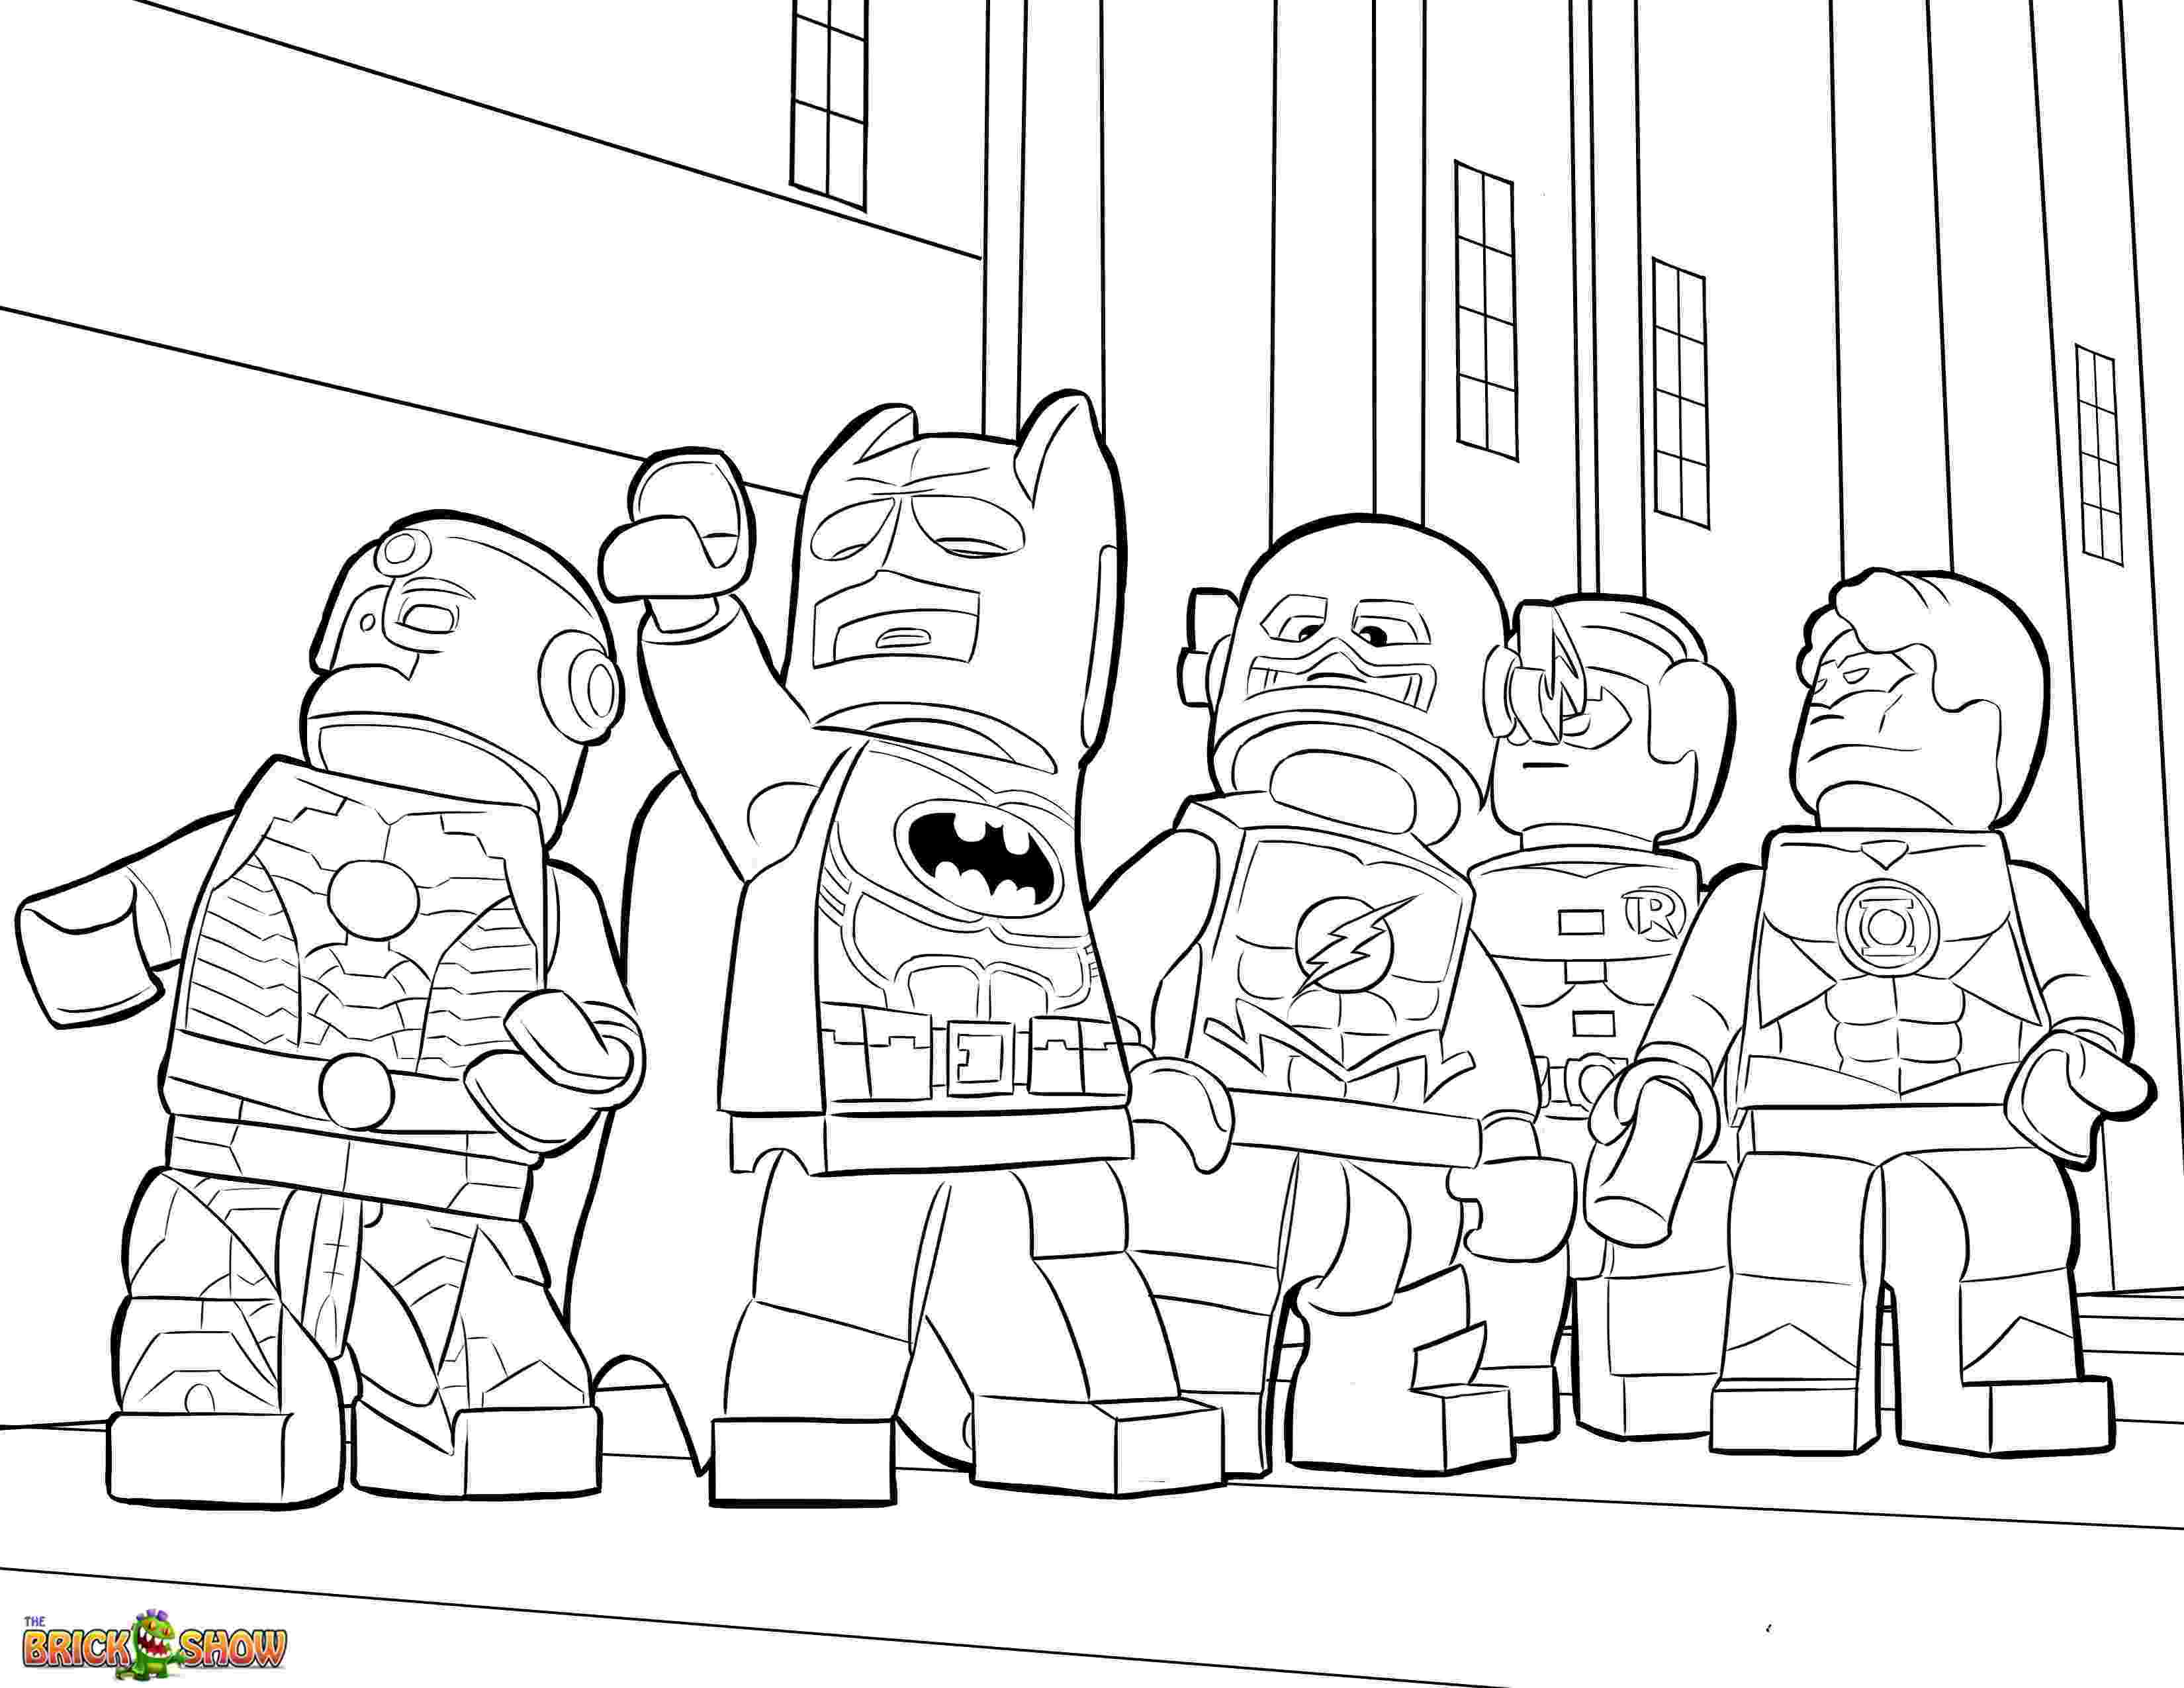 free lego printable coloring book lego star wars coloring pages free timeless miraclecom free printable book lego coloring